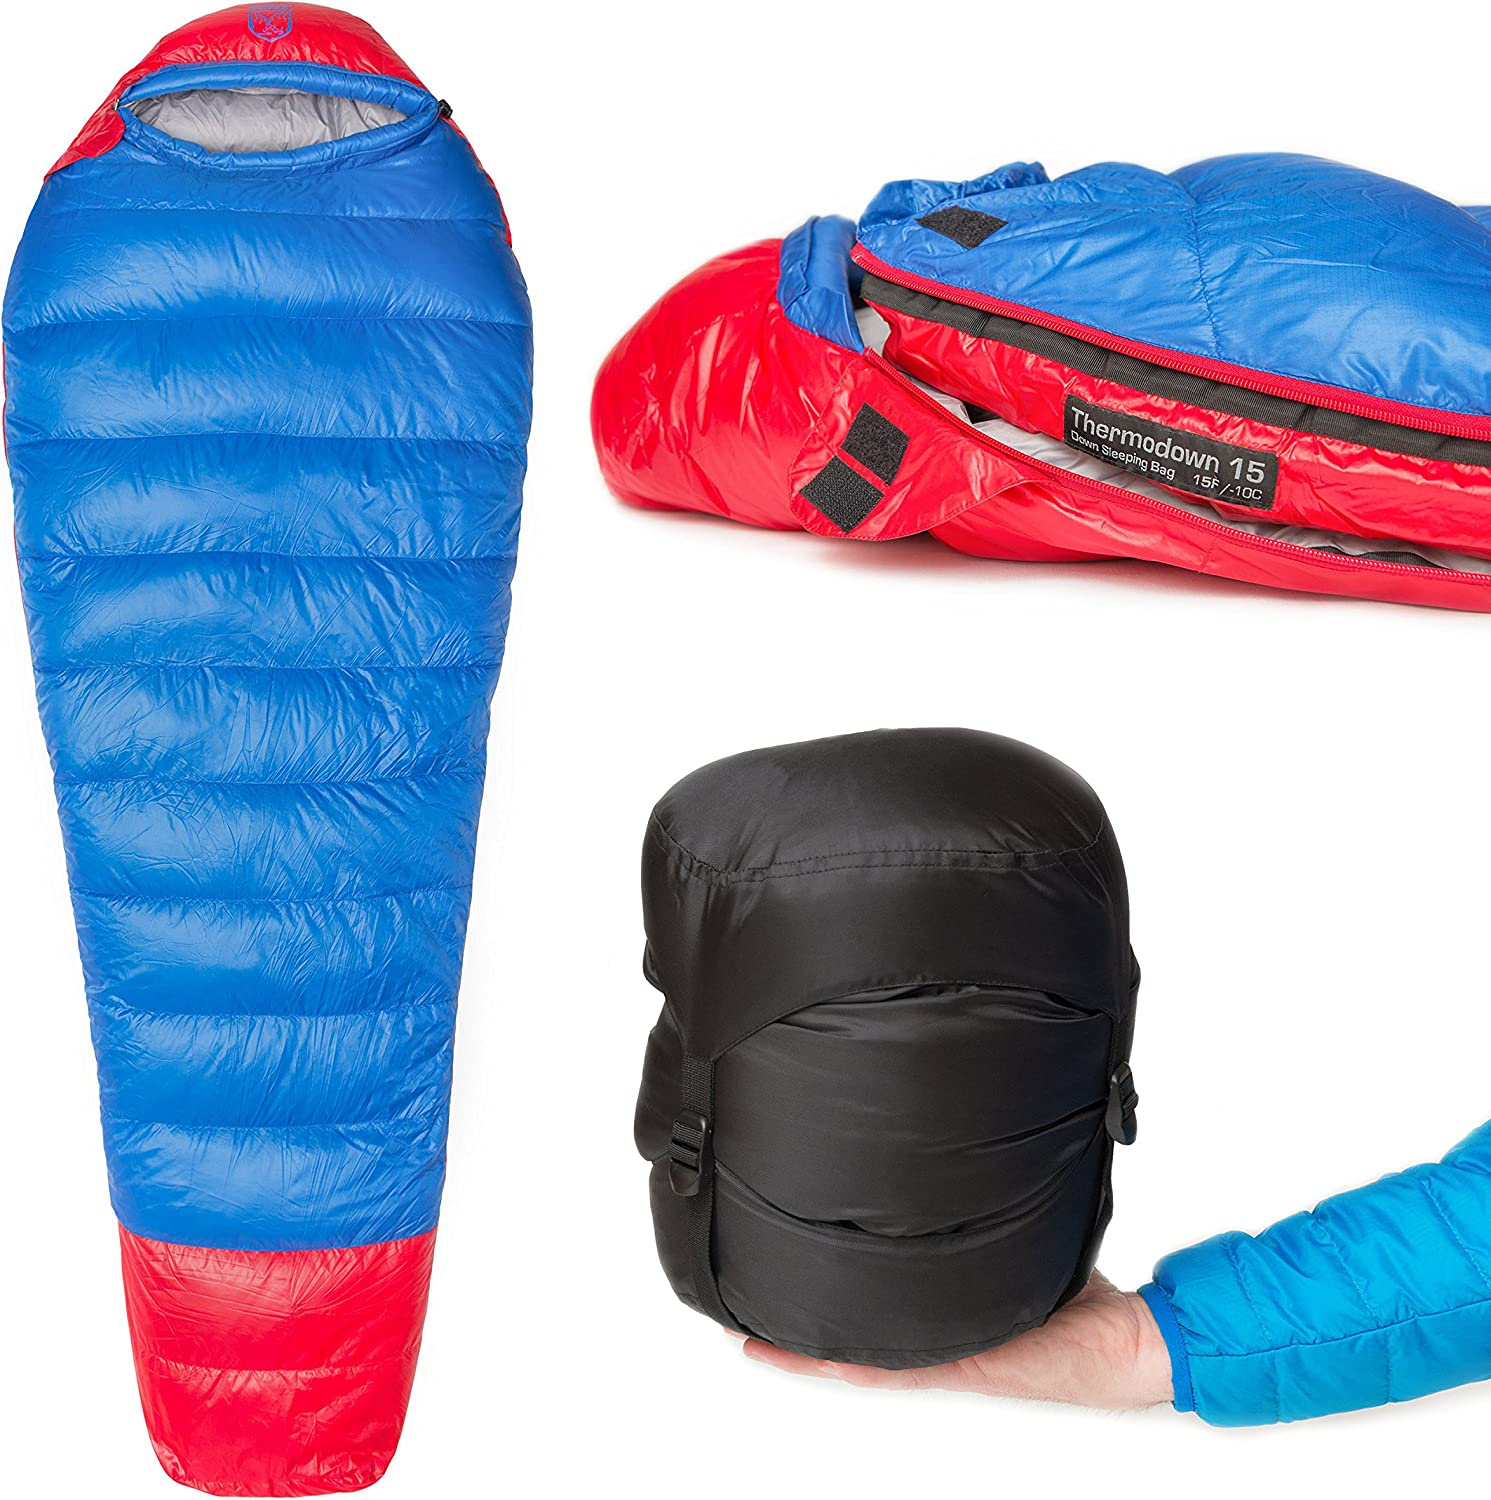 Paria Outdoor Products Thermodown 15 Degree Down Mummy Sleeping Bag – Ultralight Cold Weather, 3 Season Bag – Perfect for Backcountry Camping and Backpacking